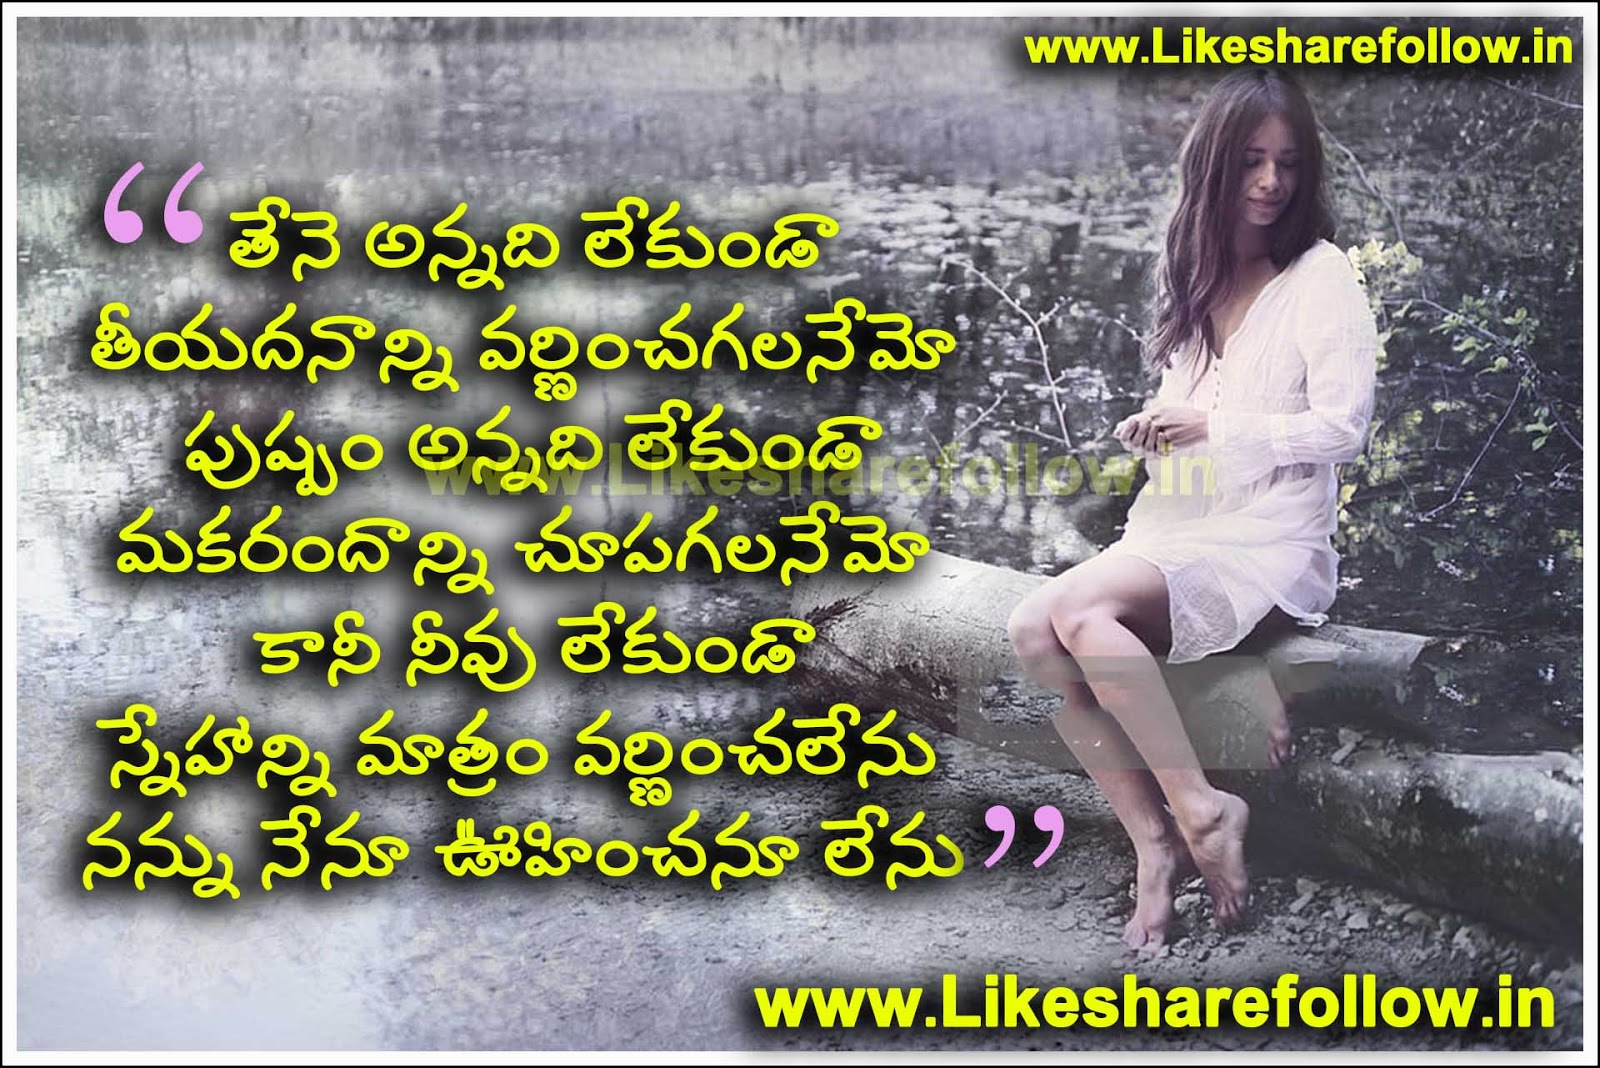 Telugu Love Quotes Best Telugu Love Quotations  Like Share Follow